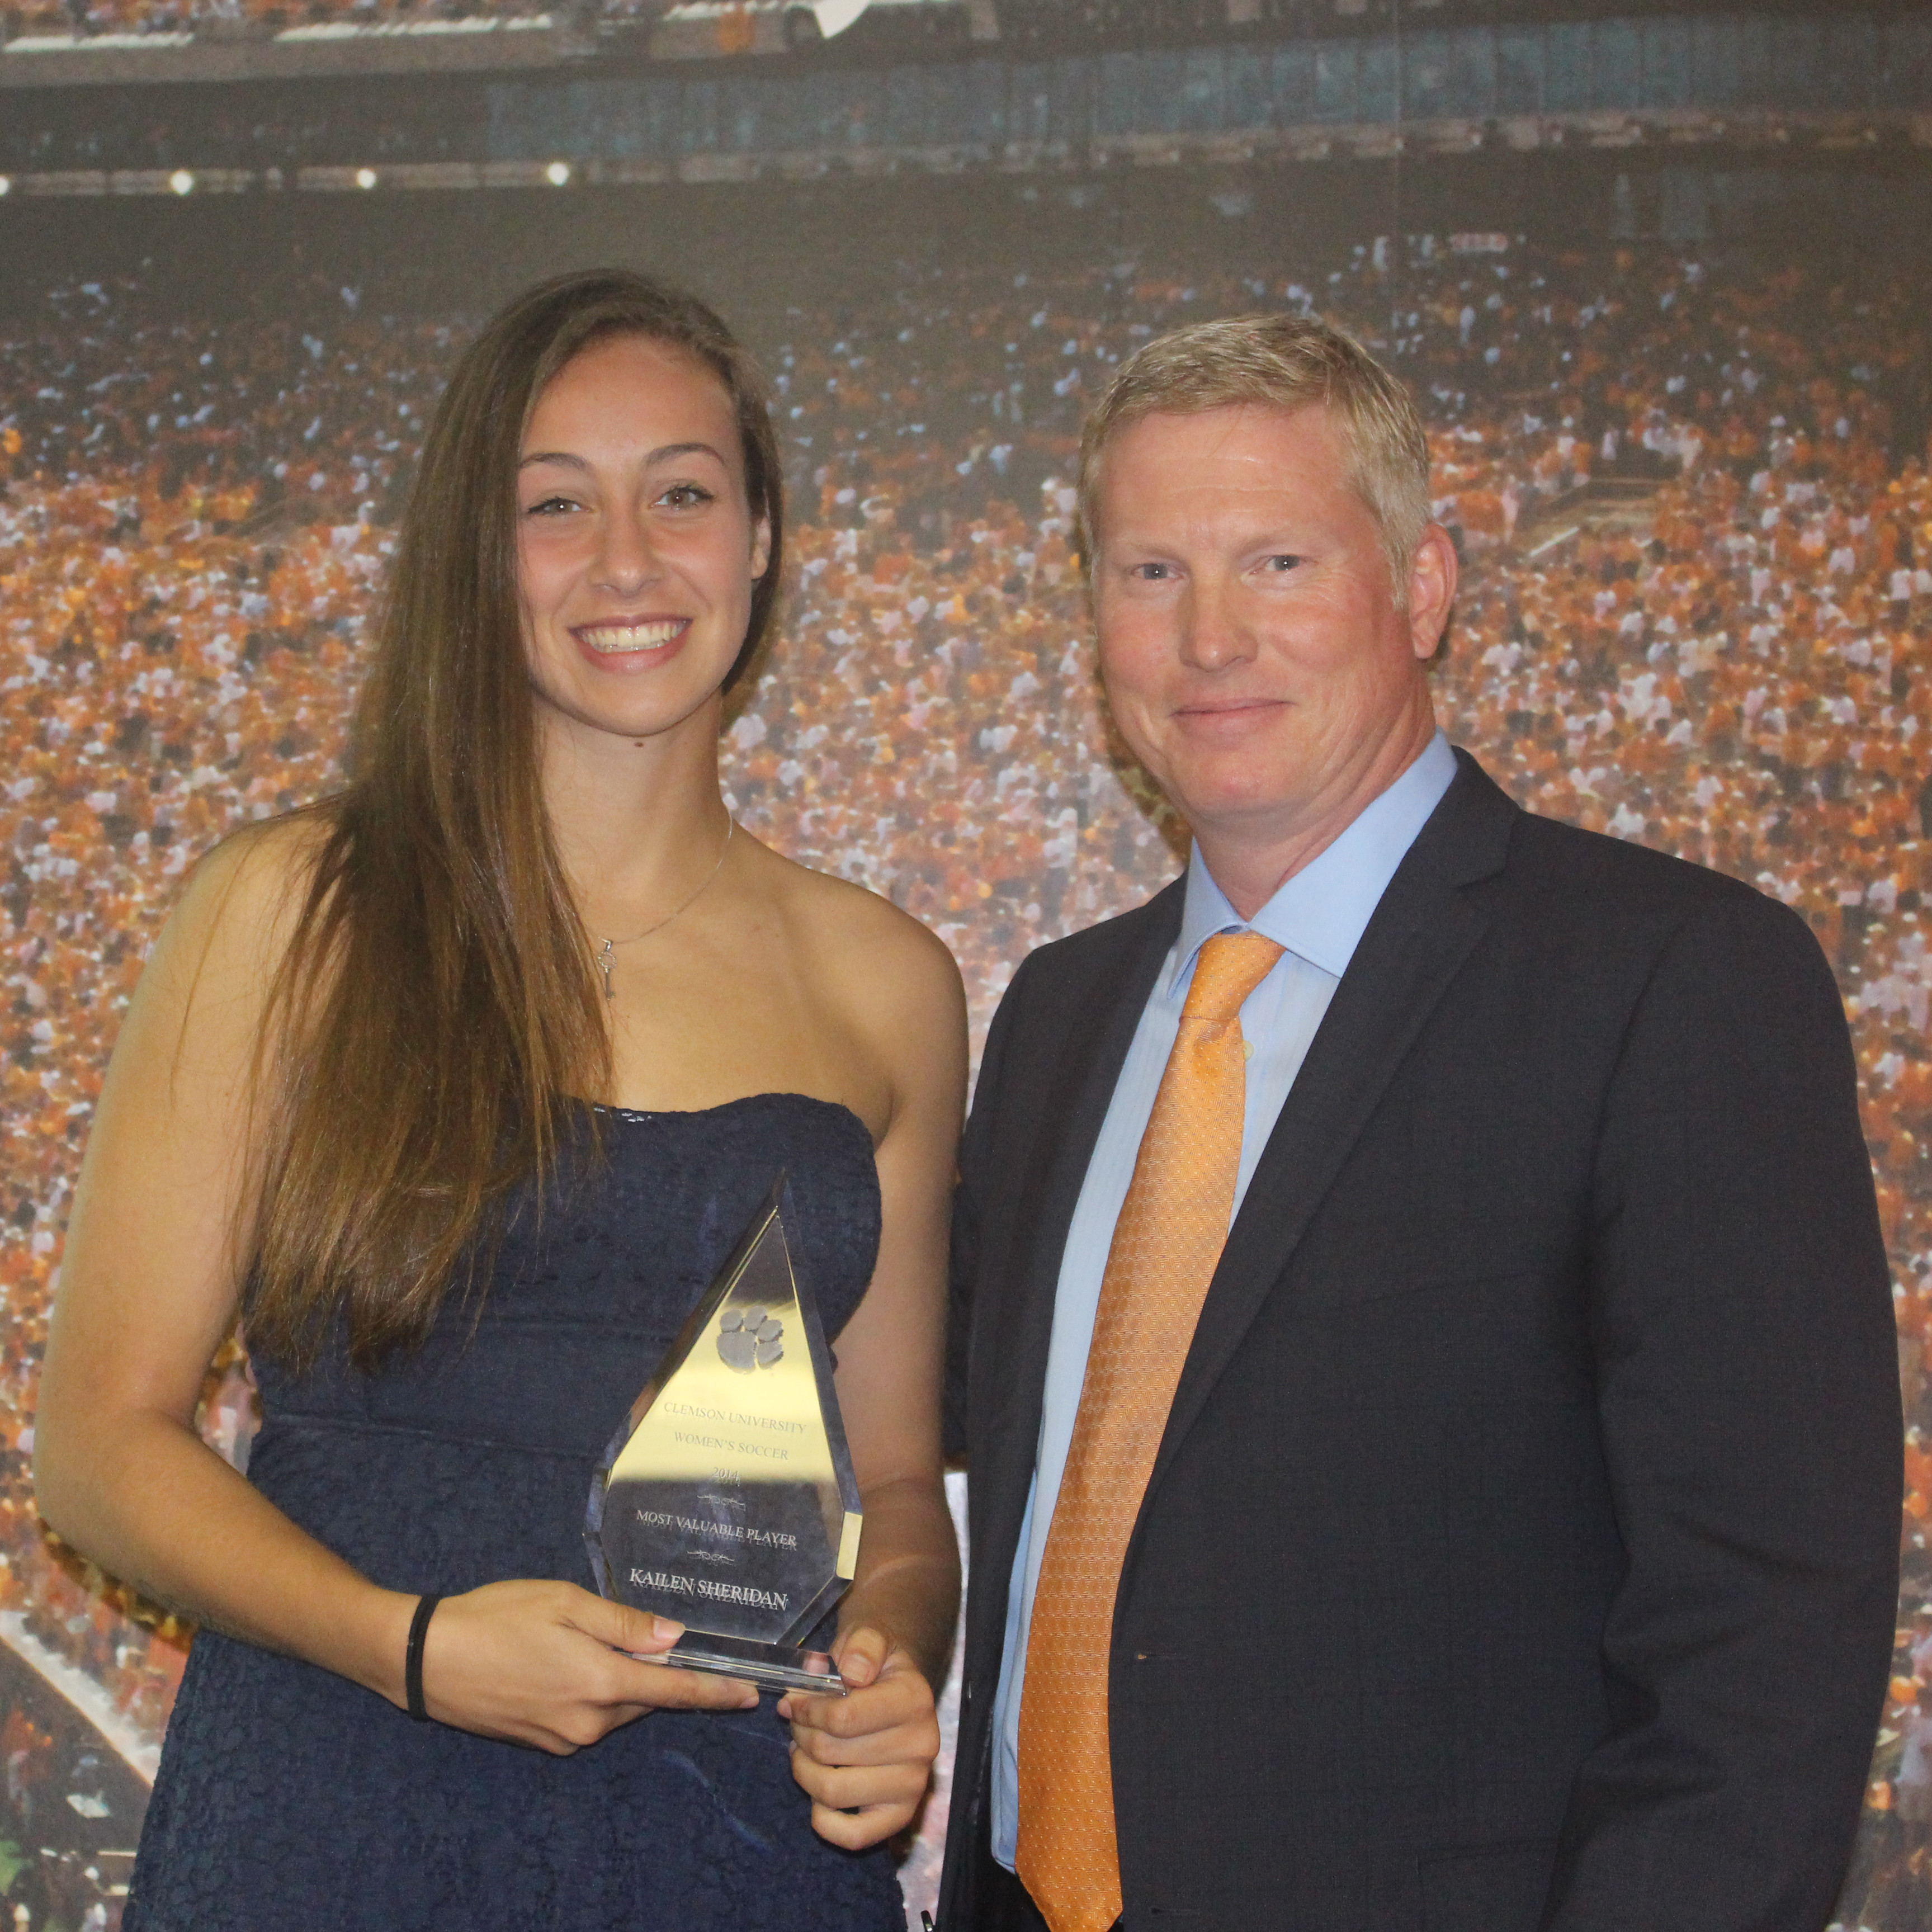 Women's Soccer Program Recognizes Award Winners at Annual Banquet